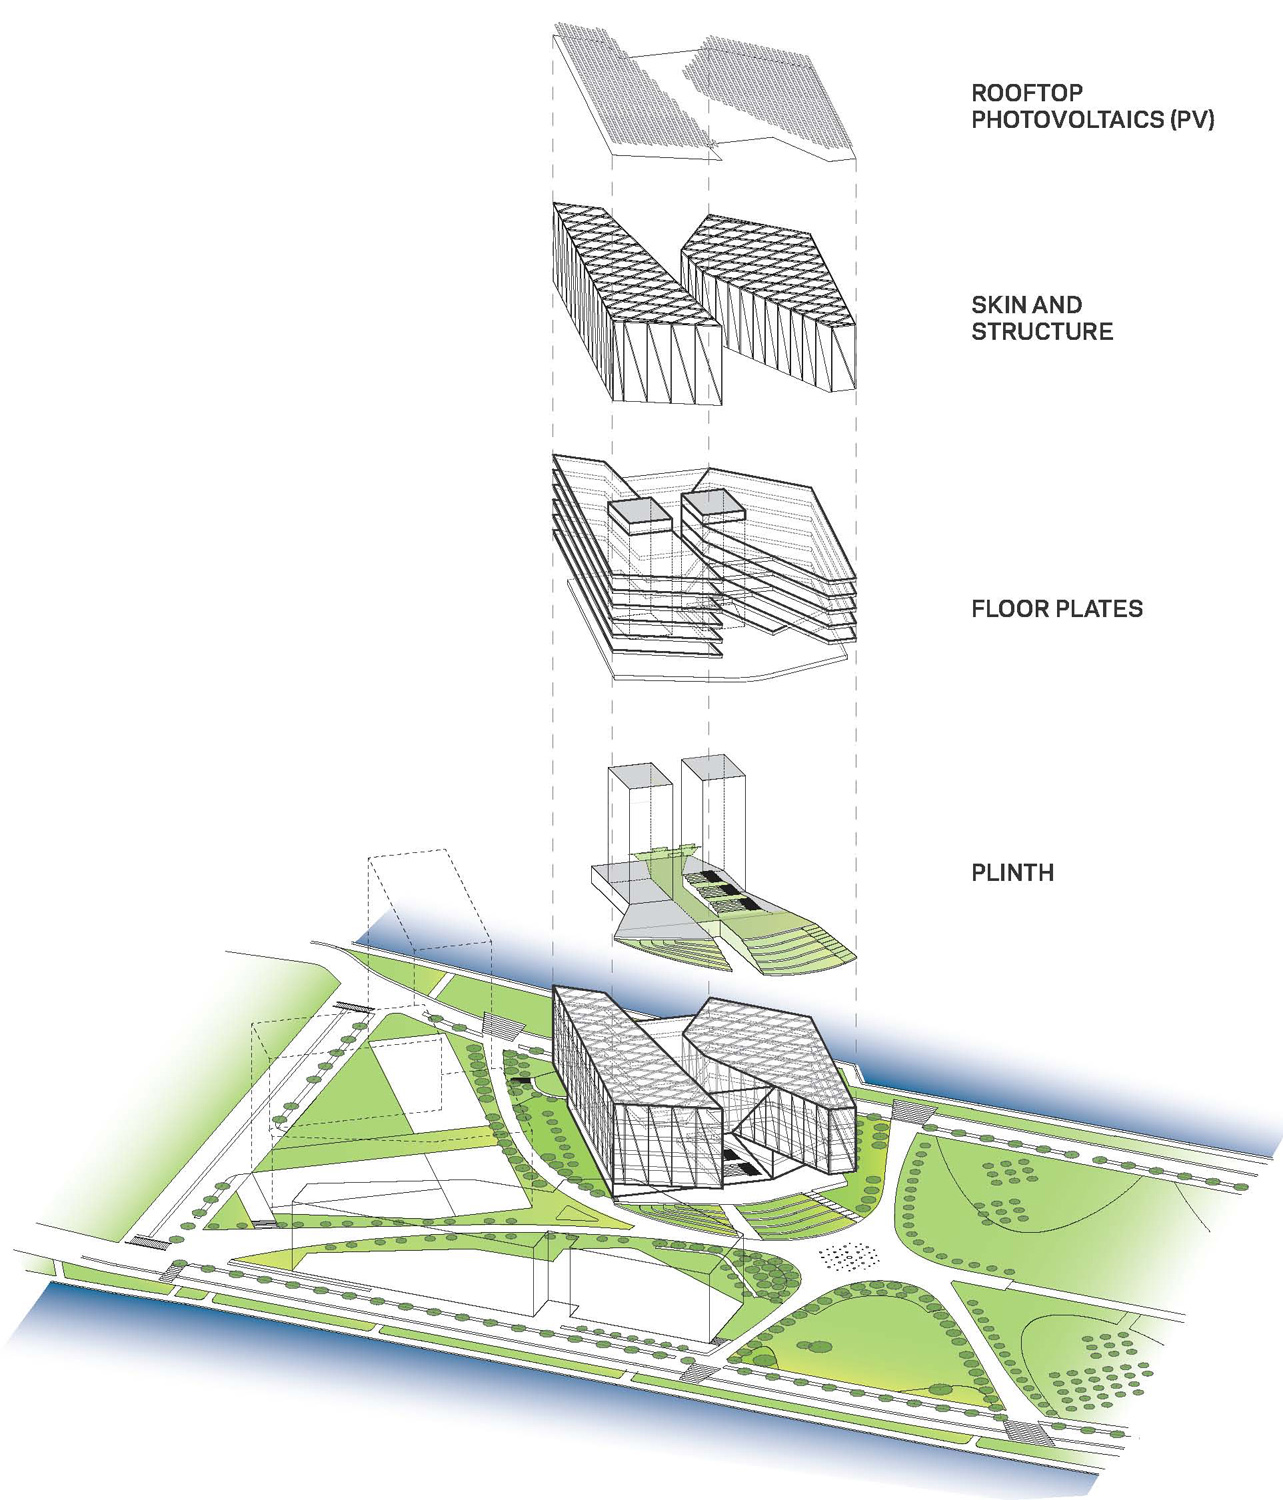 Sustainability diagram. 761 photovoltaic solar panels across a 24,000-square-foot array on the rooftop, minimize the building's heat gain, provide shade on the terrace, and contribute to the campus-wide en Weiss/Manfredi}